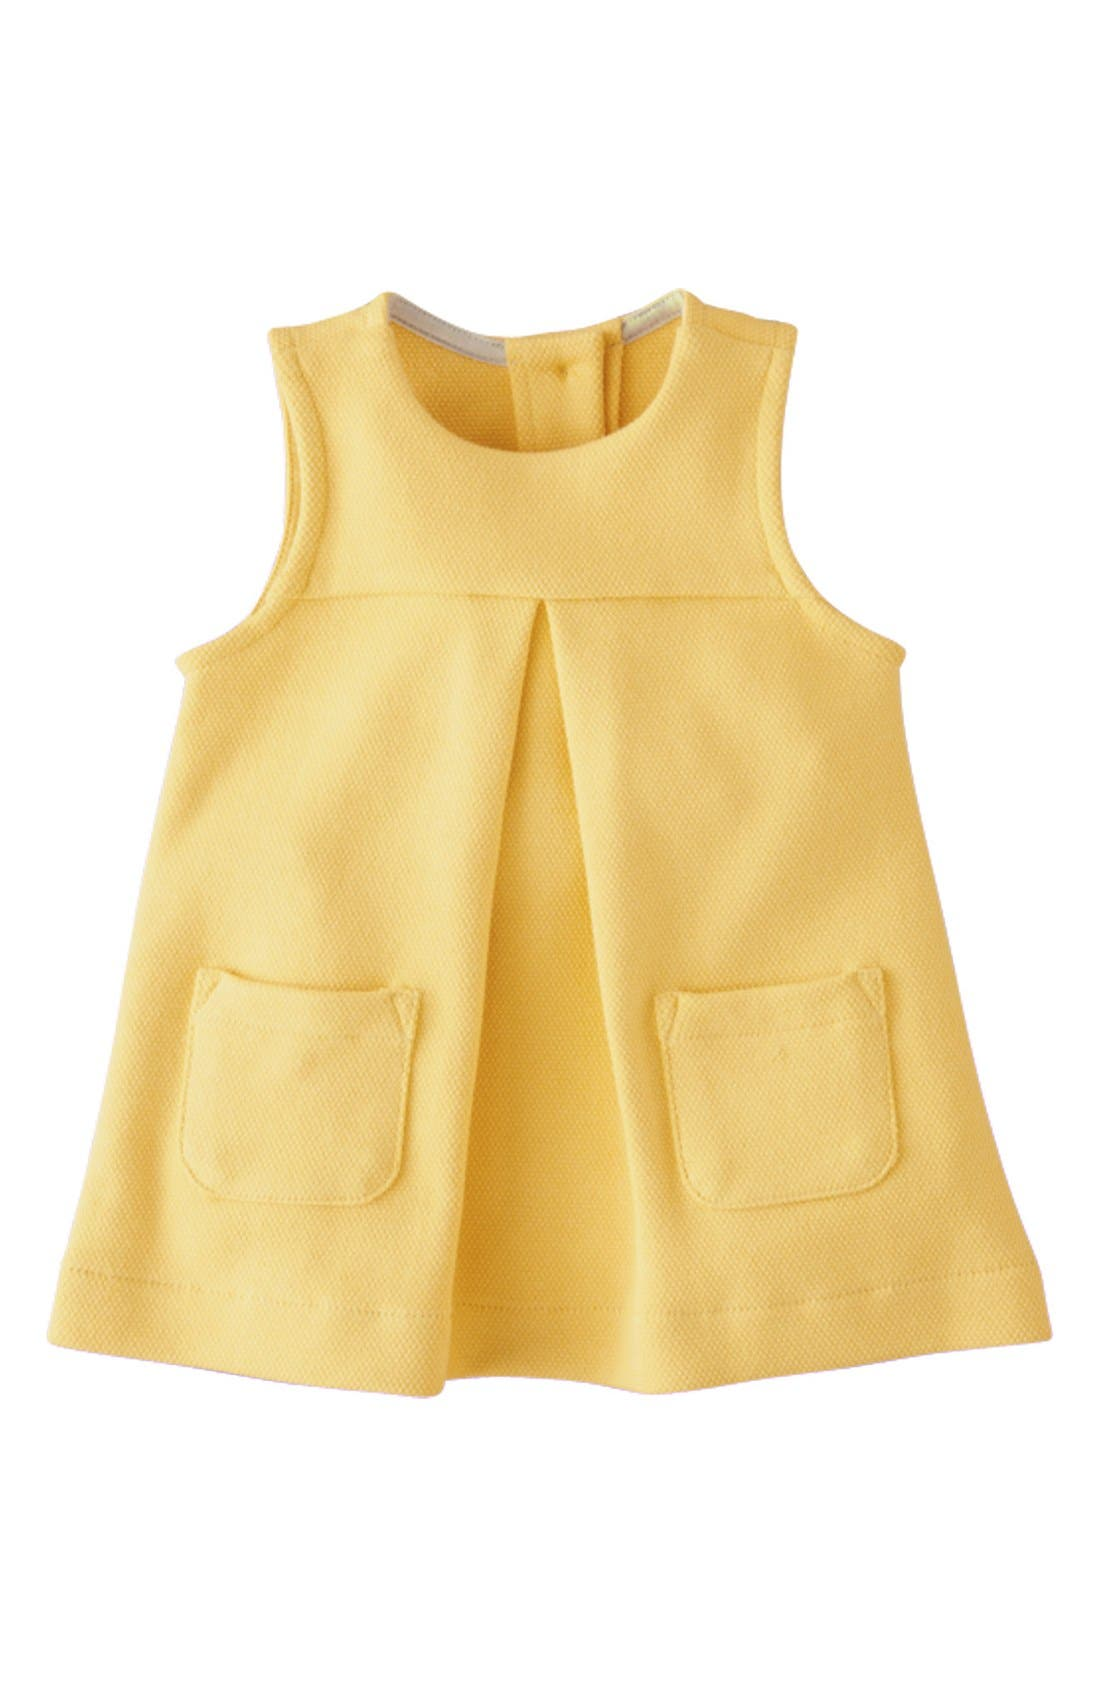 Alternate Image 1 Selected - Mini Boden Jersey Pinafore Dress (Baby Girls)